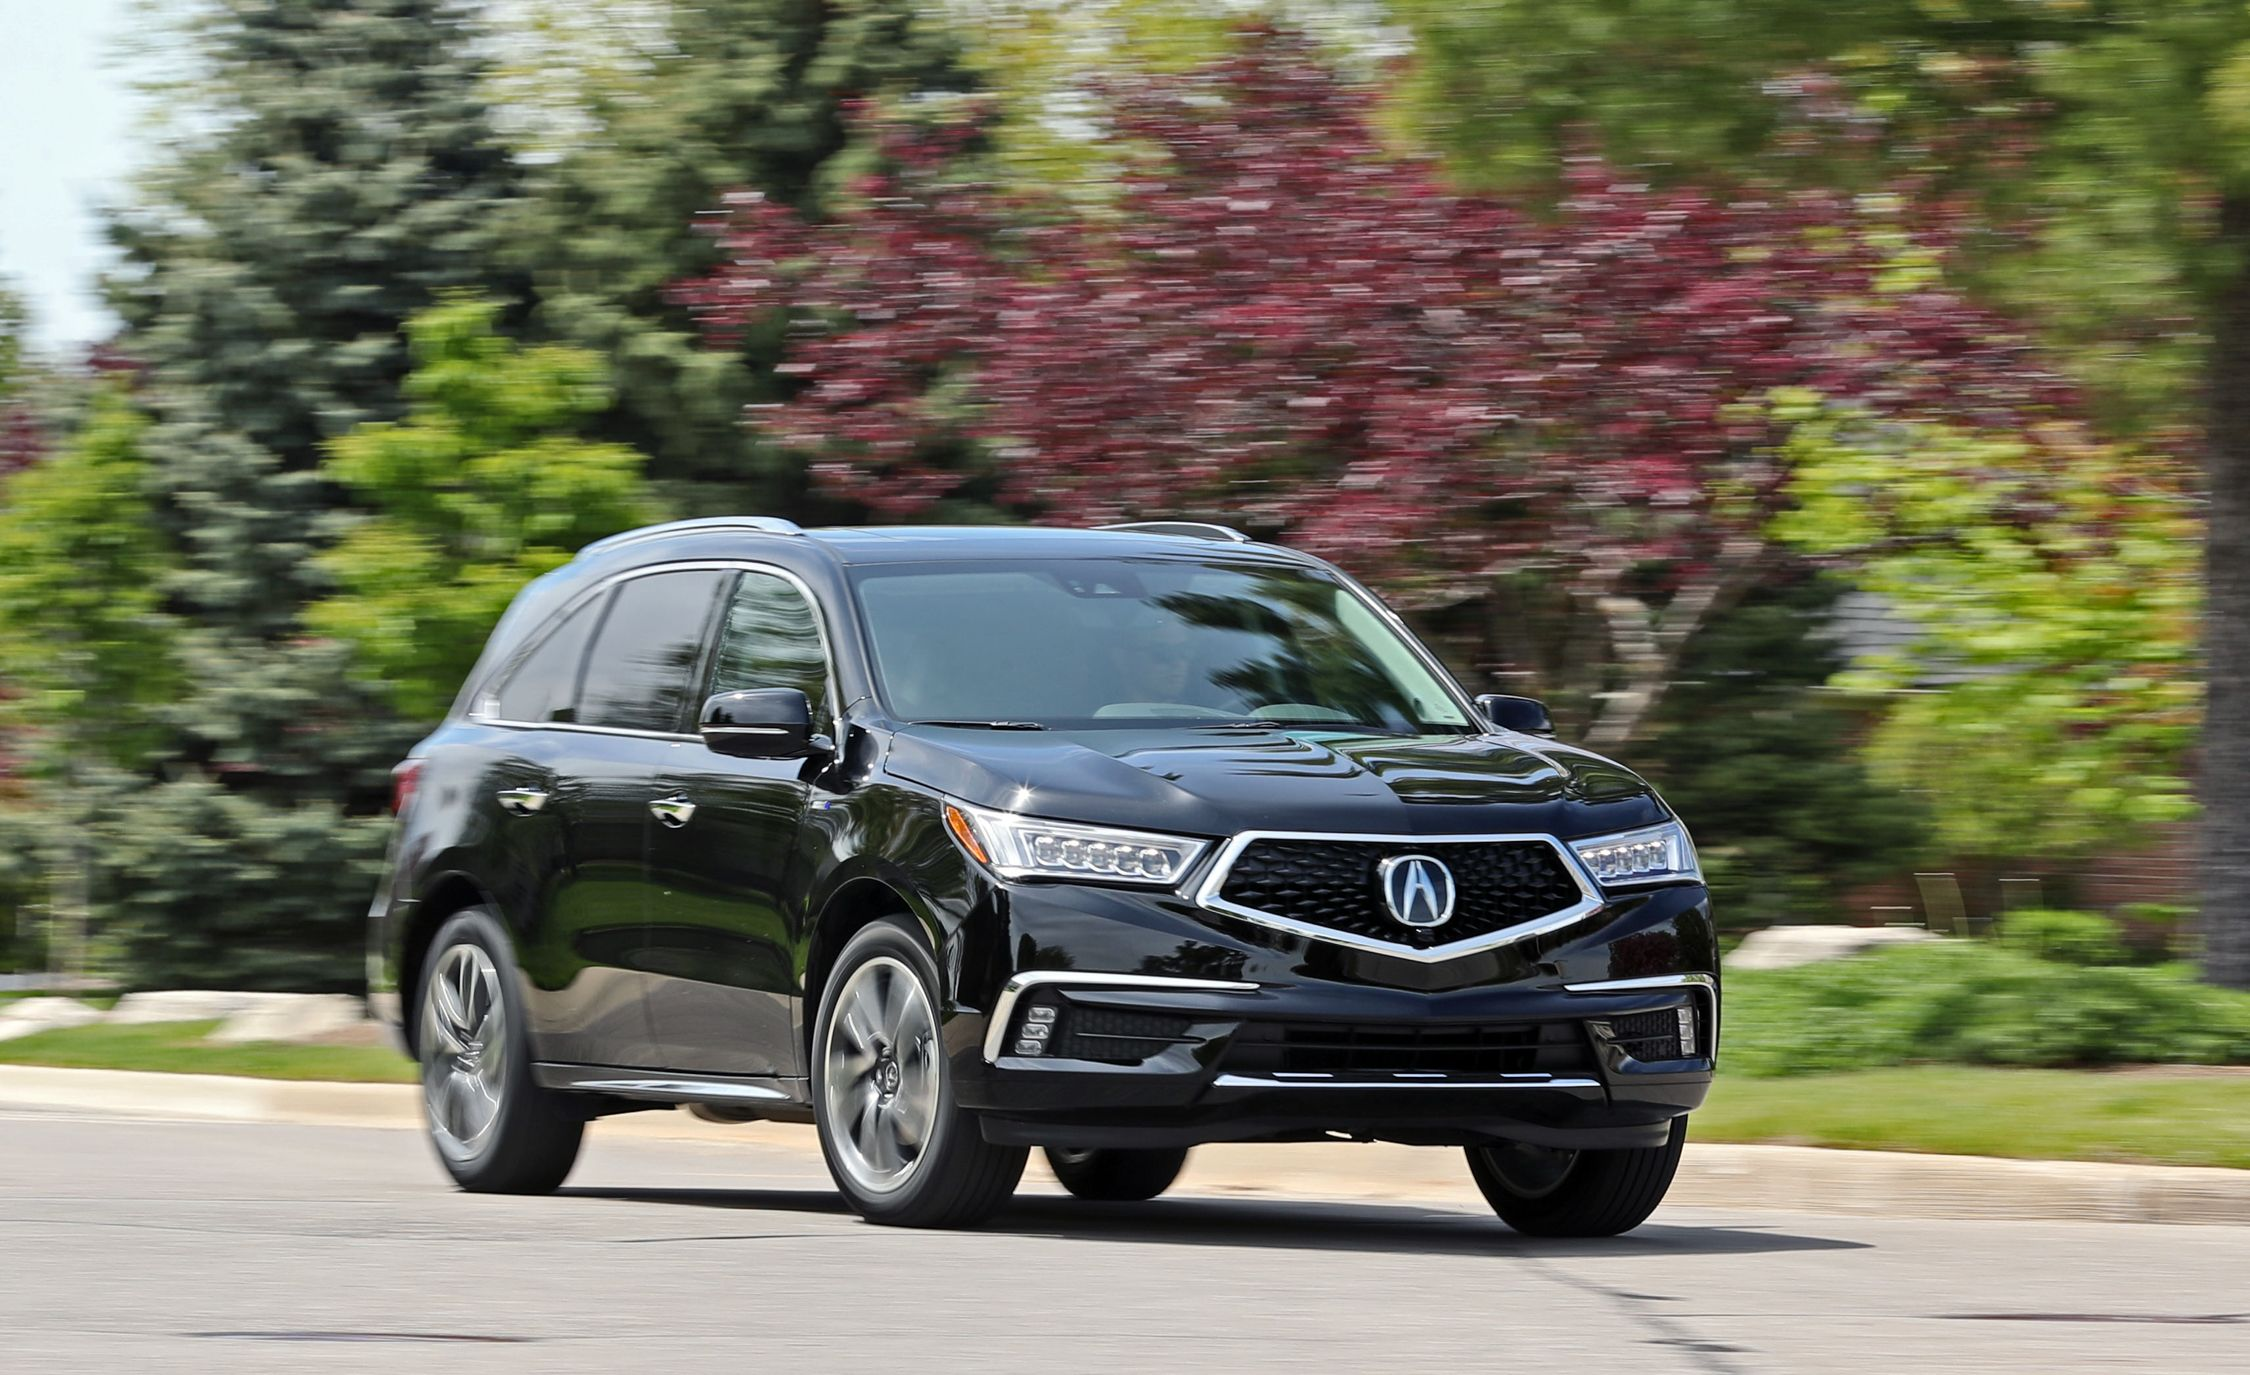 2019 Acura MDX Reviews | Acura MDX Price, Photos, and Specs | Car and Driver